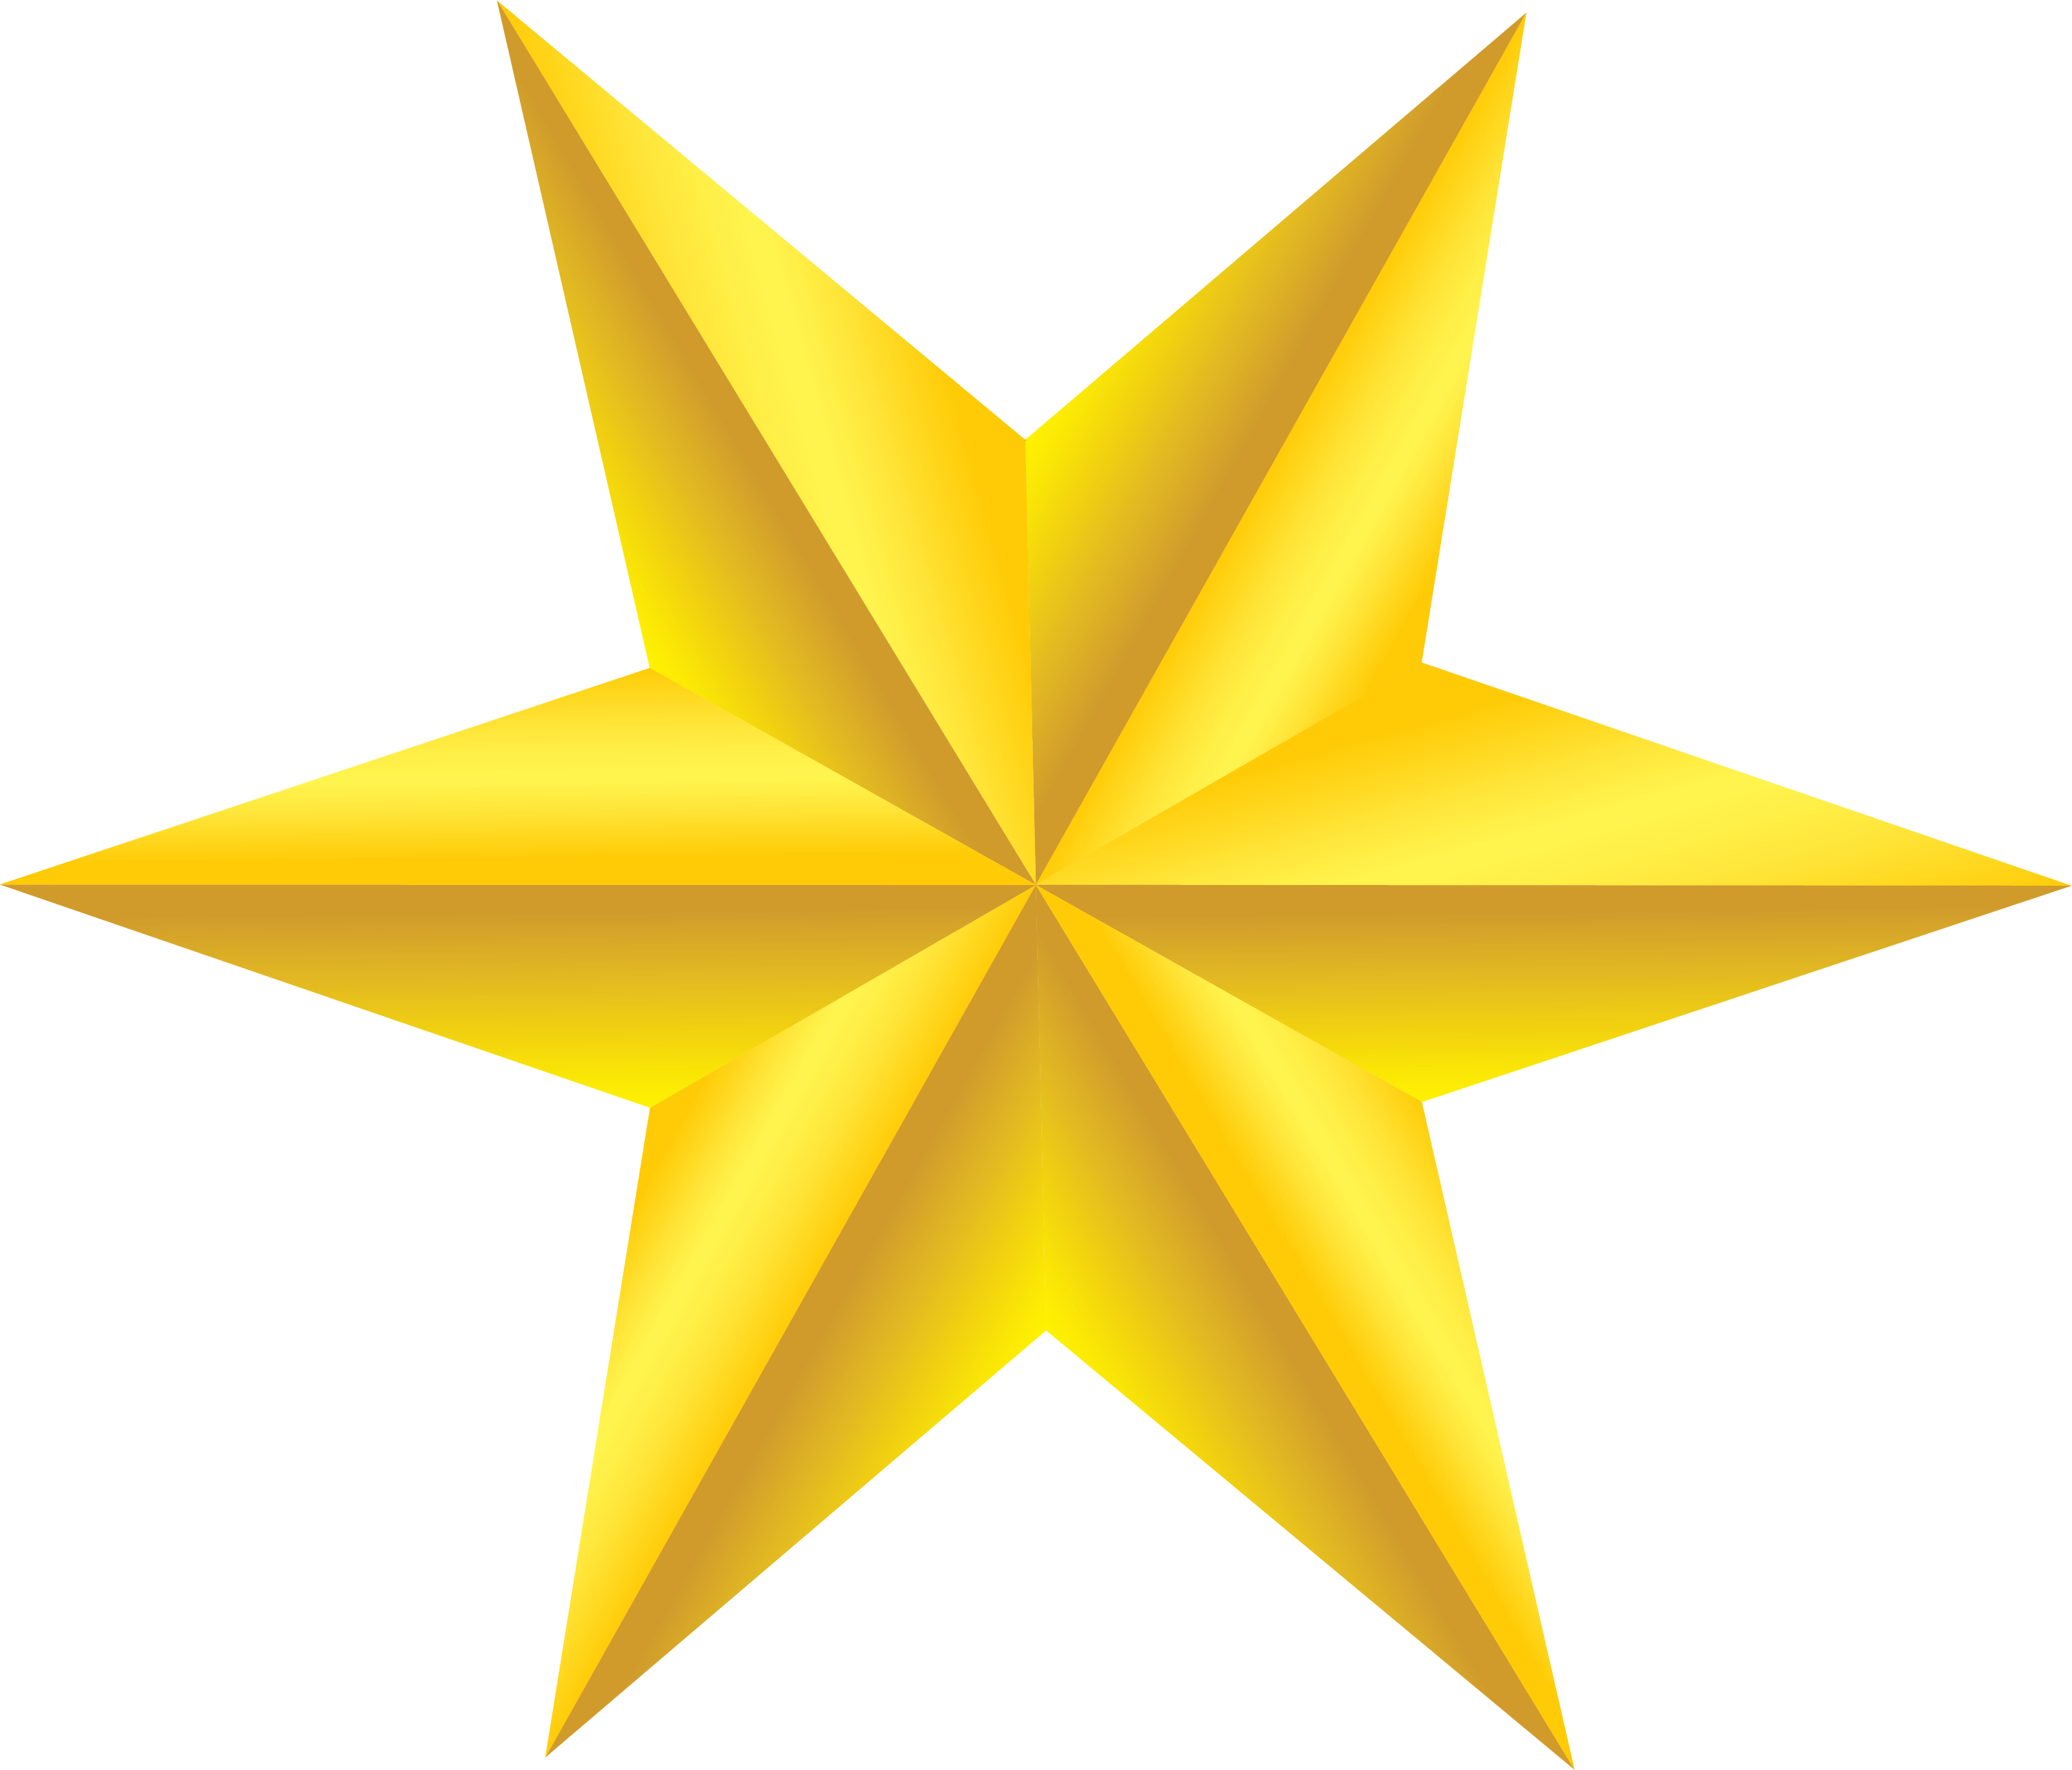 Gold star line clipart freeuse download Star - Golden Star 3001*2564 transprent Png Free Download - Angle ... freeuse download